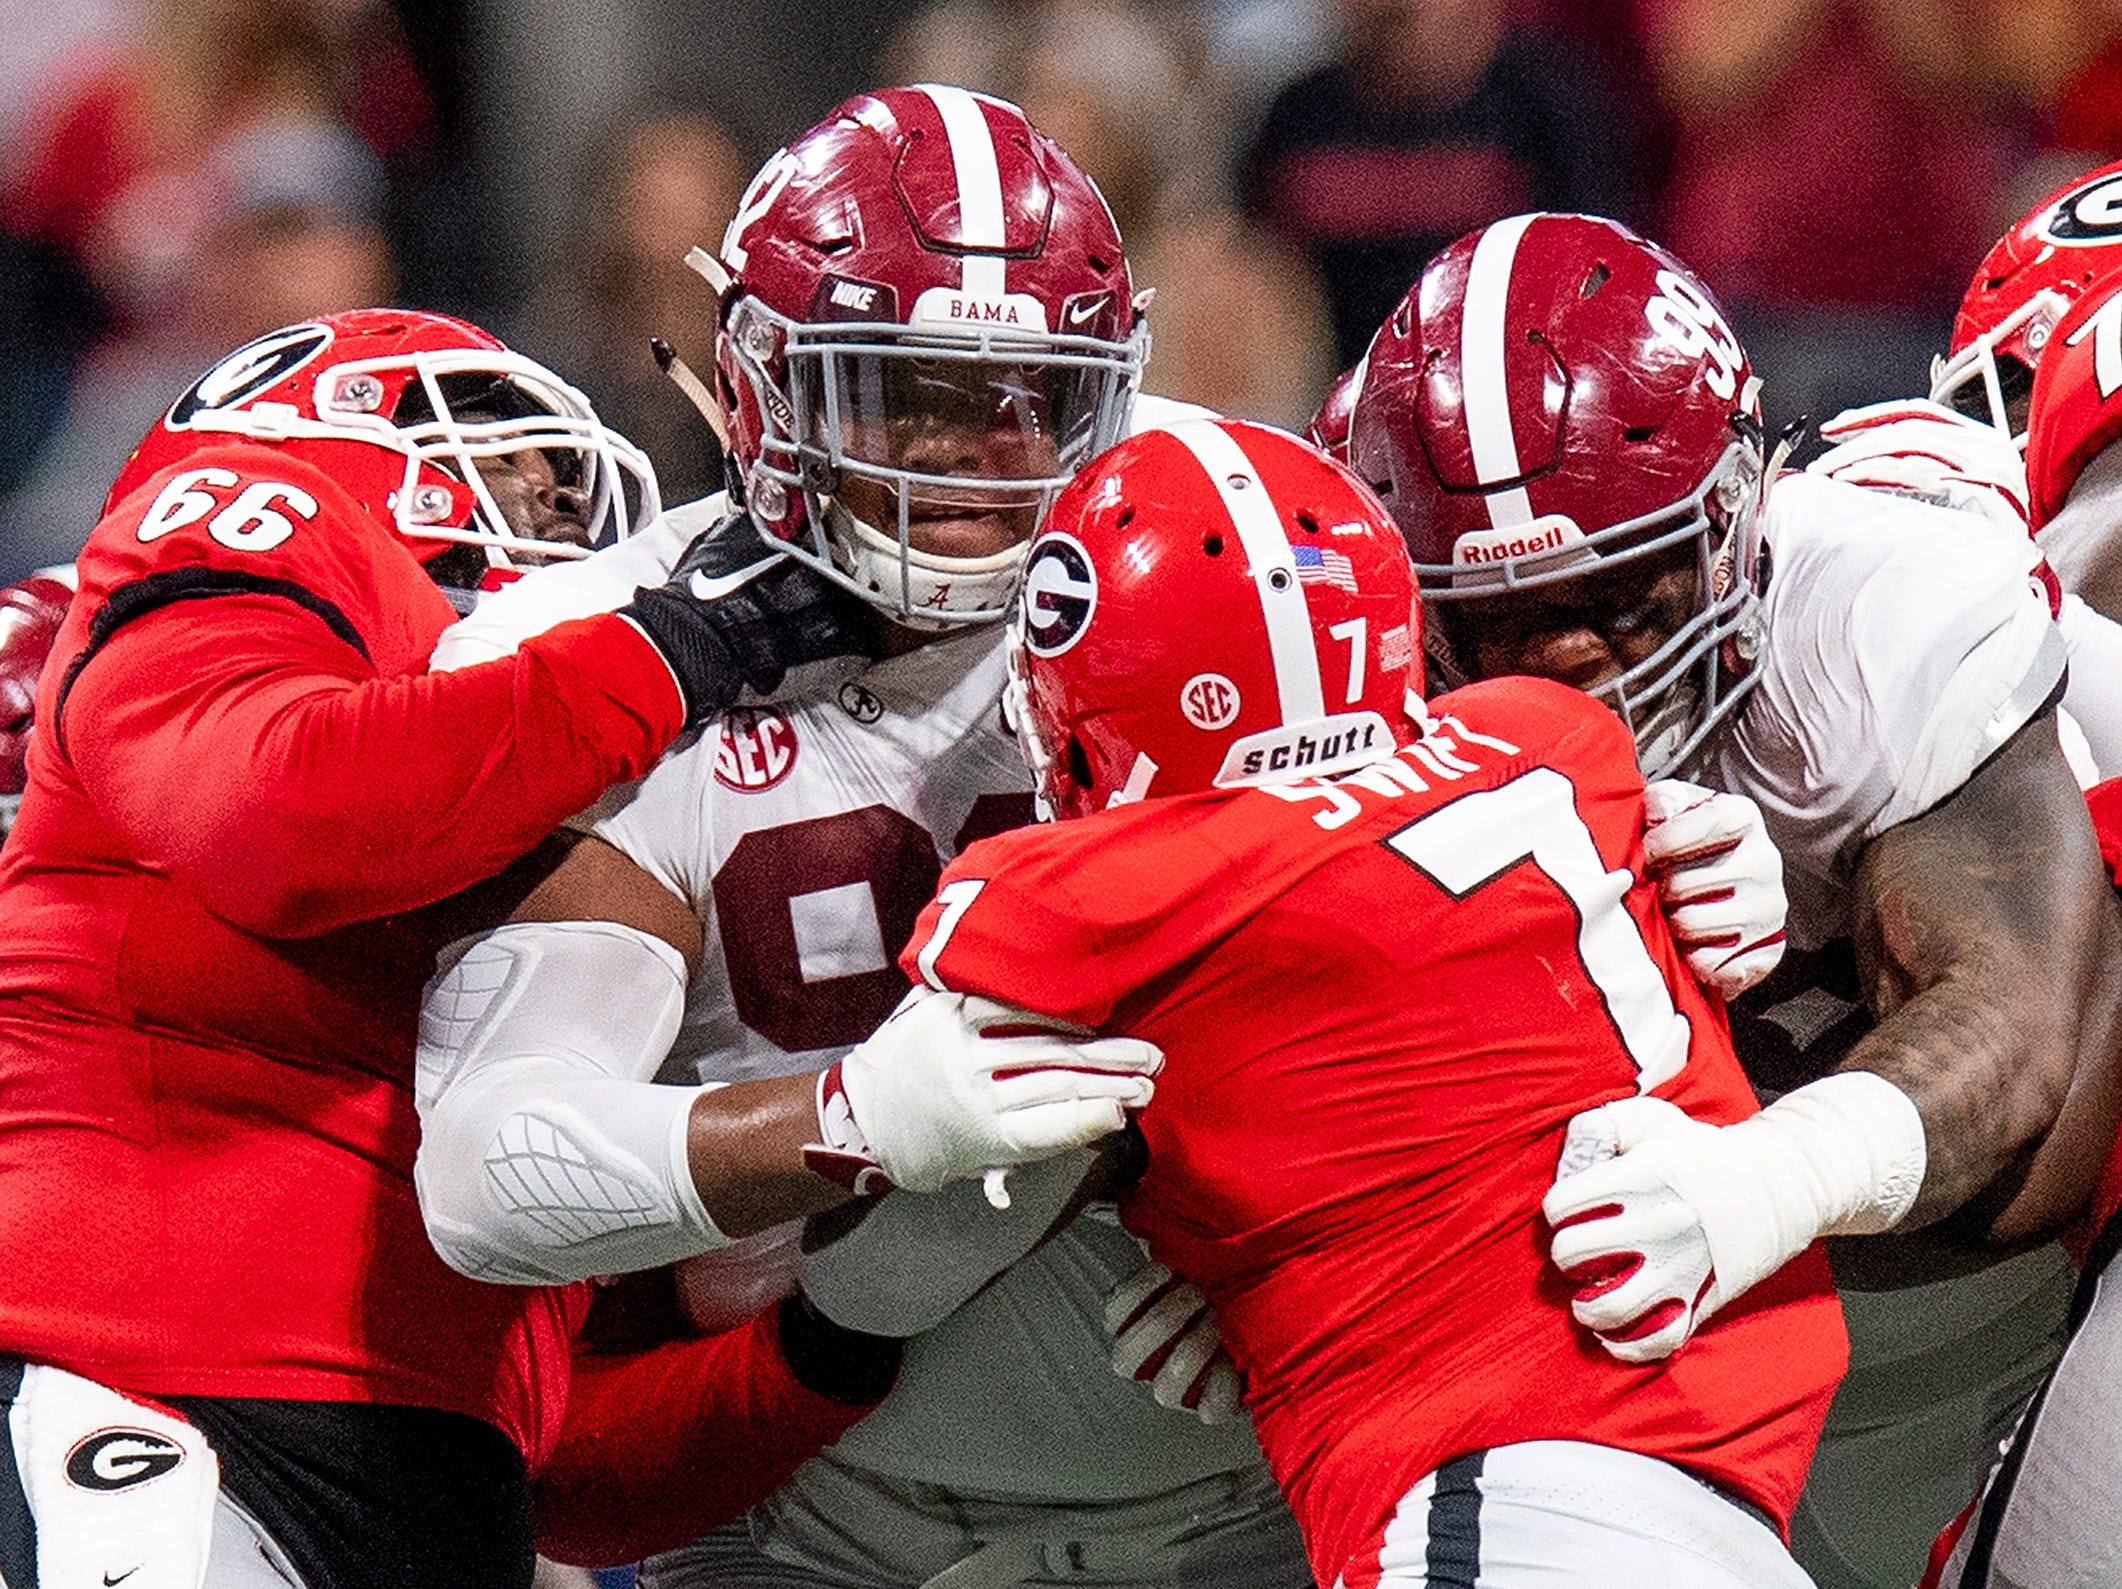 Alabama defensive linemen Quinnen Williams (92) and Raekwon Davis (99) stop Georgia running back D'Andre Swift (7) during first half action of the SEC Championship Game at Mercedes Benz Stadium in Atlanta, Ga., on Saturday December 1, 2018.